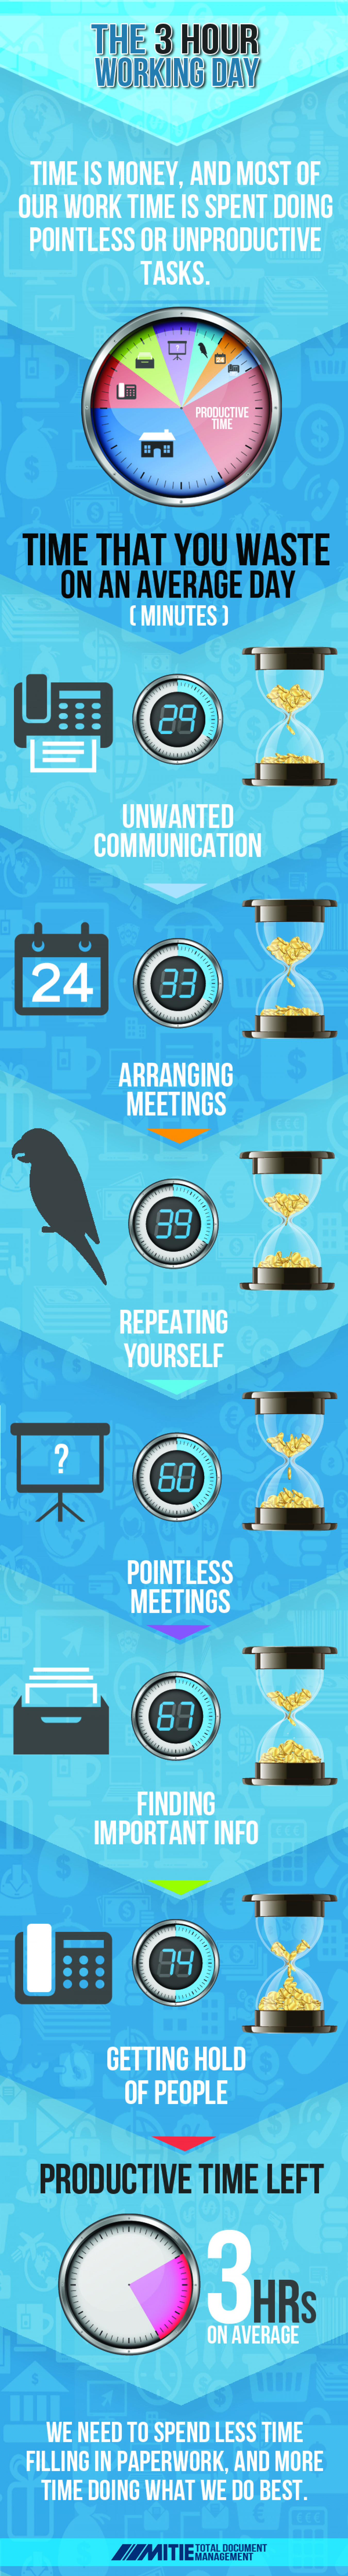 The 3 Hour Working Day Infographic